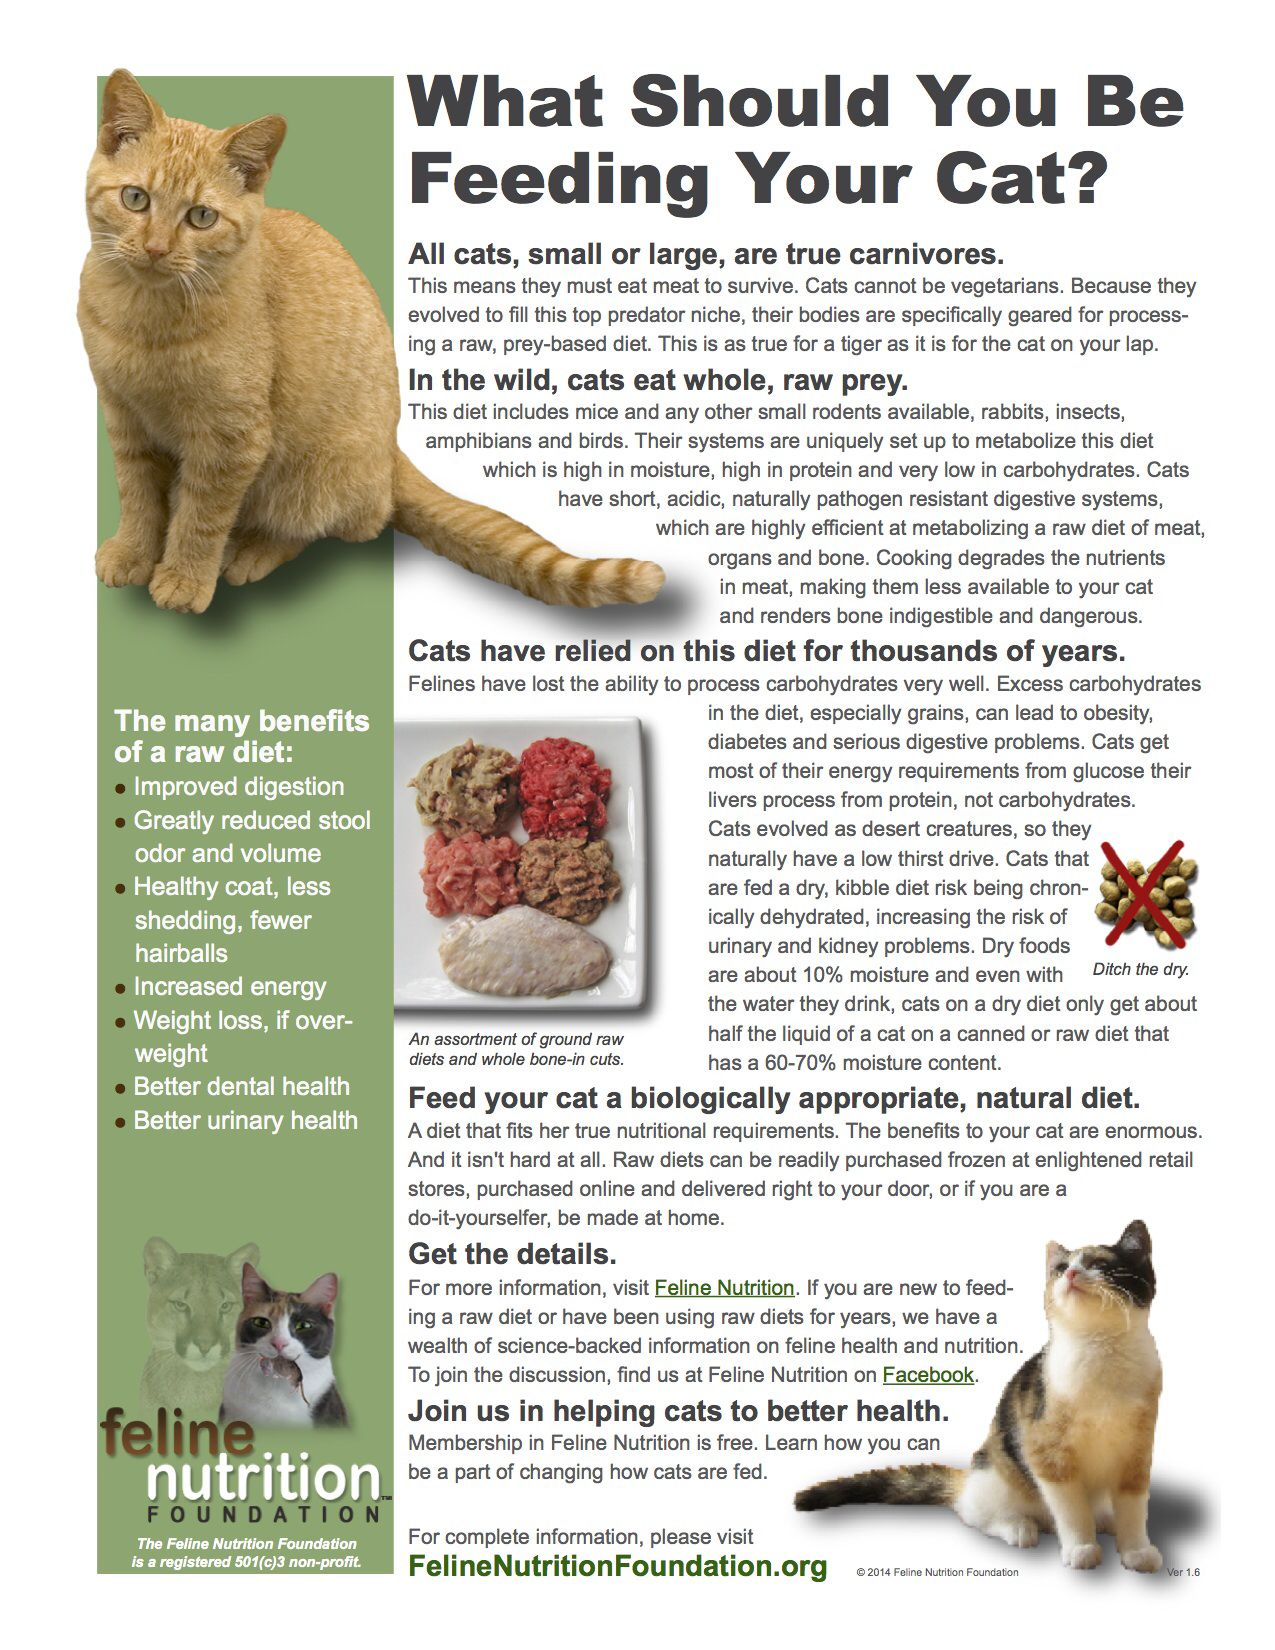 how much fat in cat diet